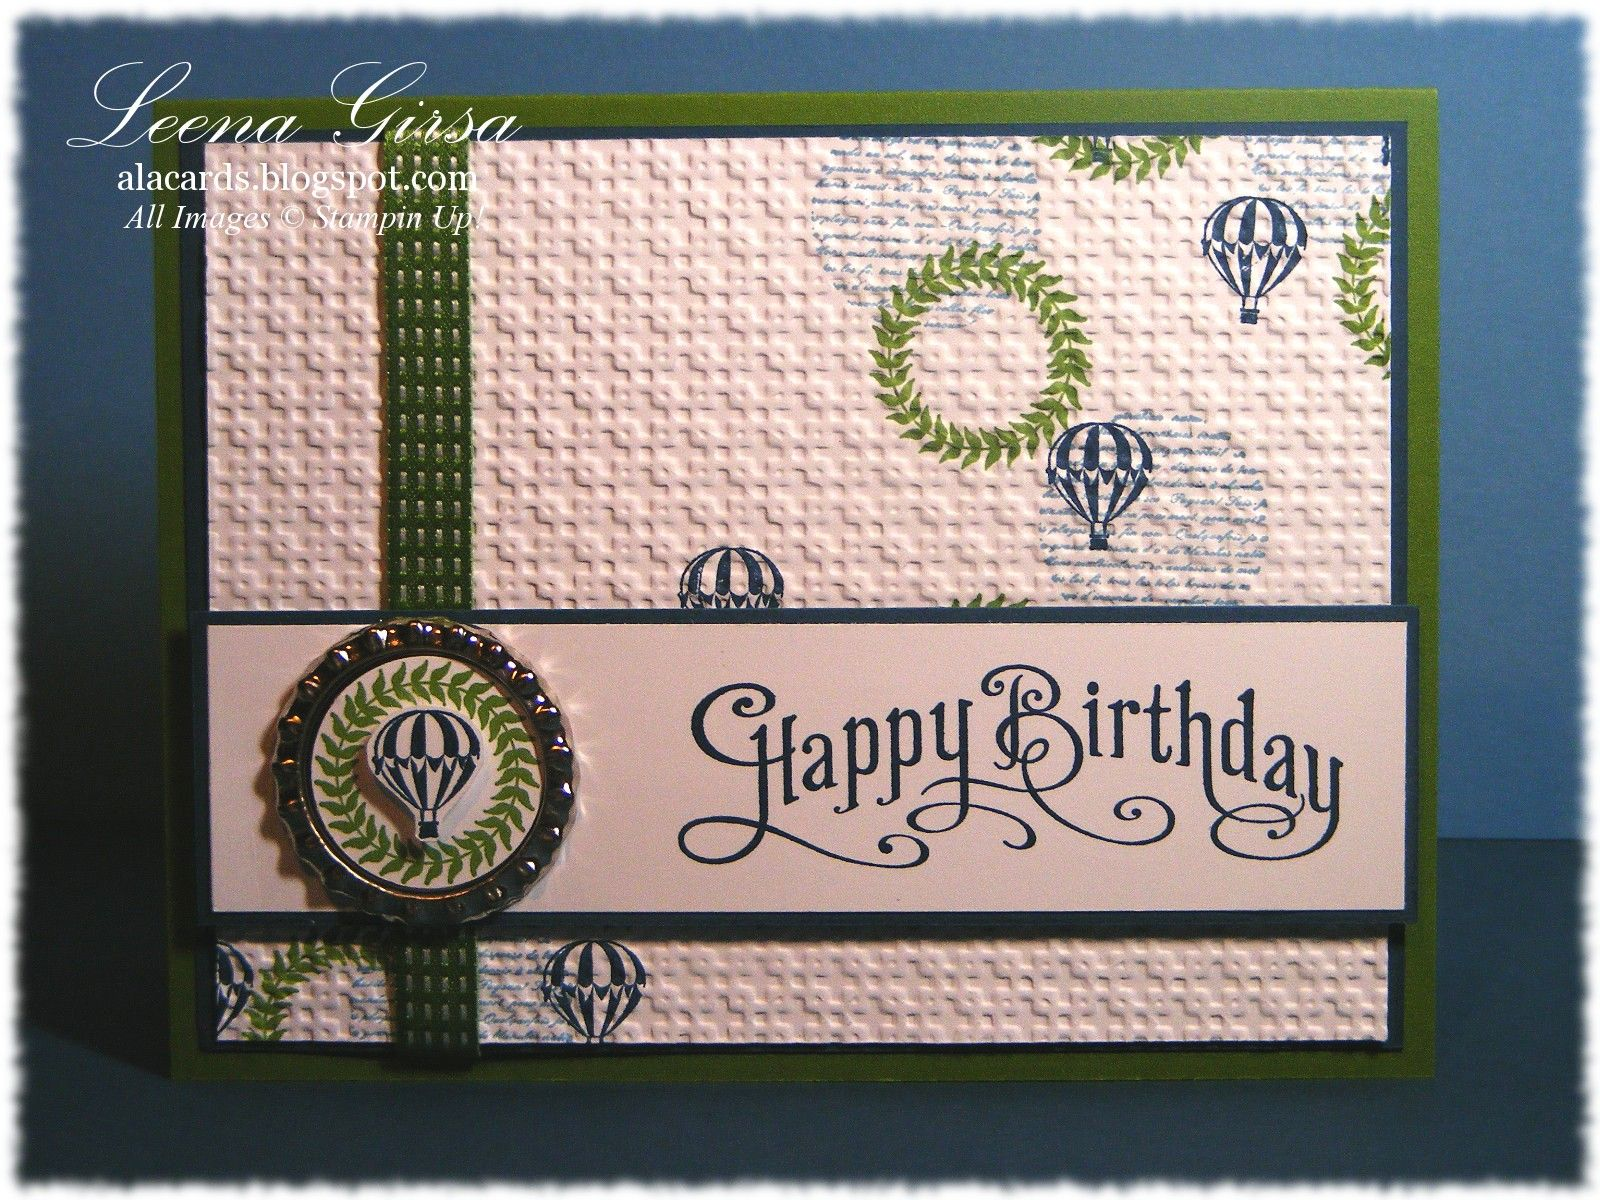 A La Cards Masculine Birthday Card Featuring Collage Curios And